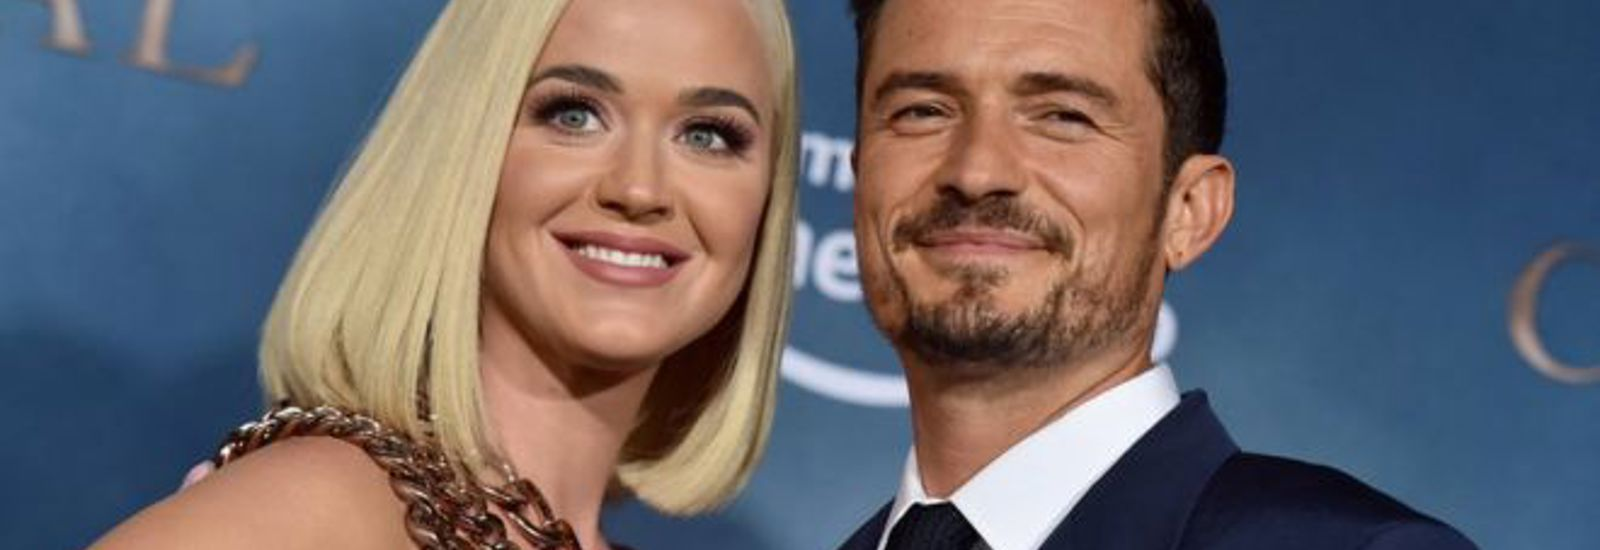 GETTY IMAGES Orlando Bloom Katy Perry